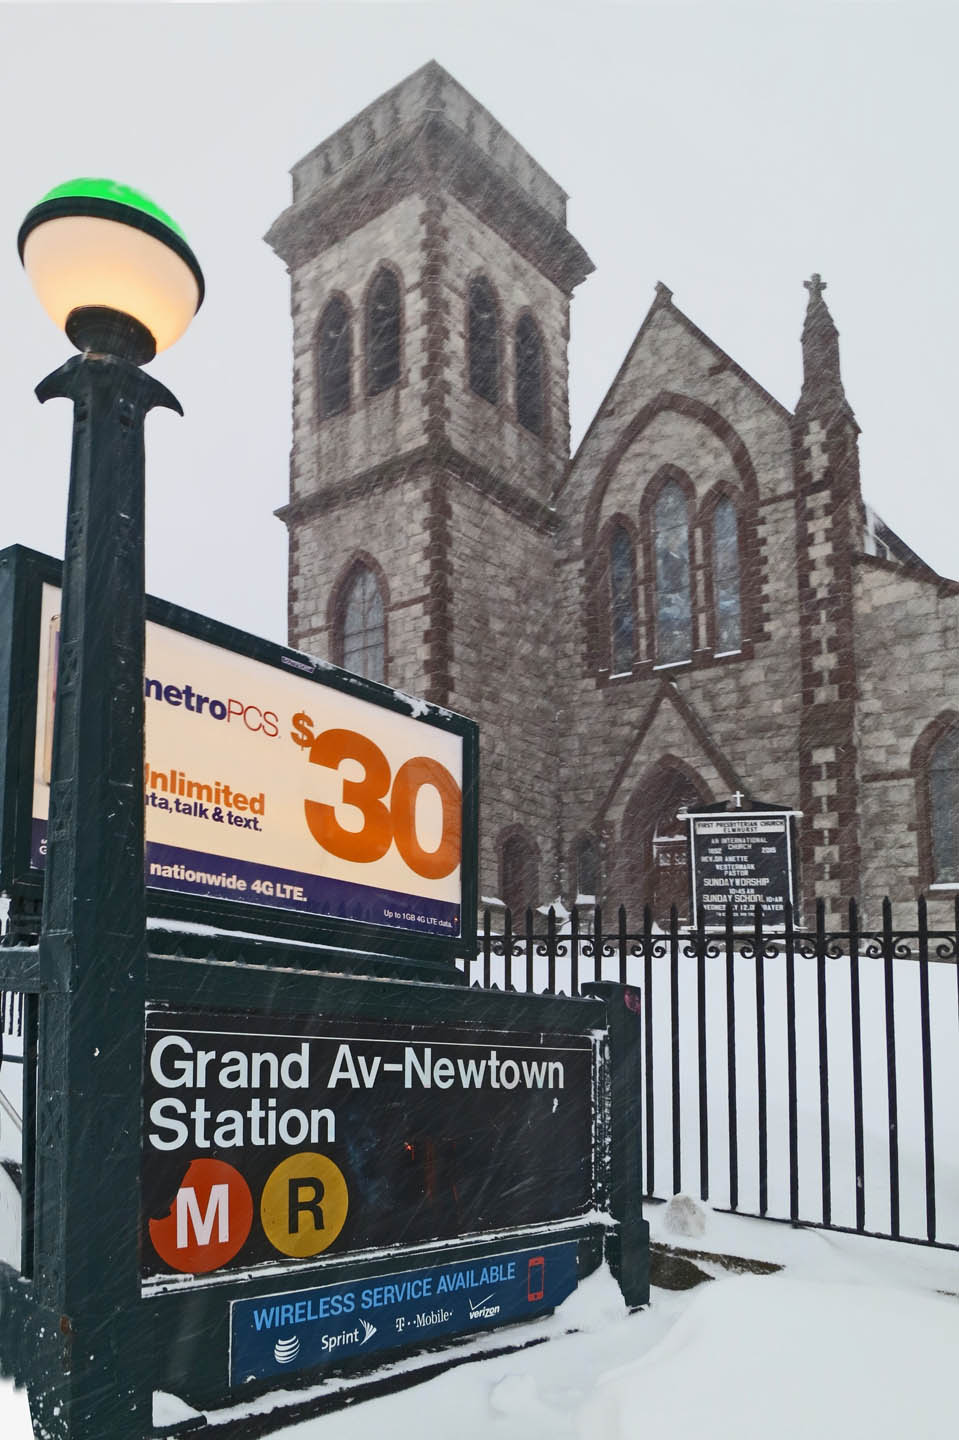 First Presbyterian Church, Elmhurst, Queens › A Journey through NYC